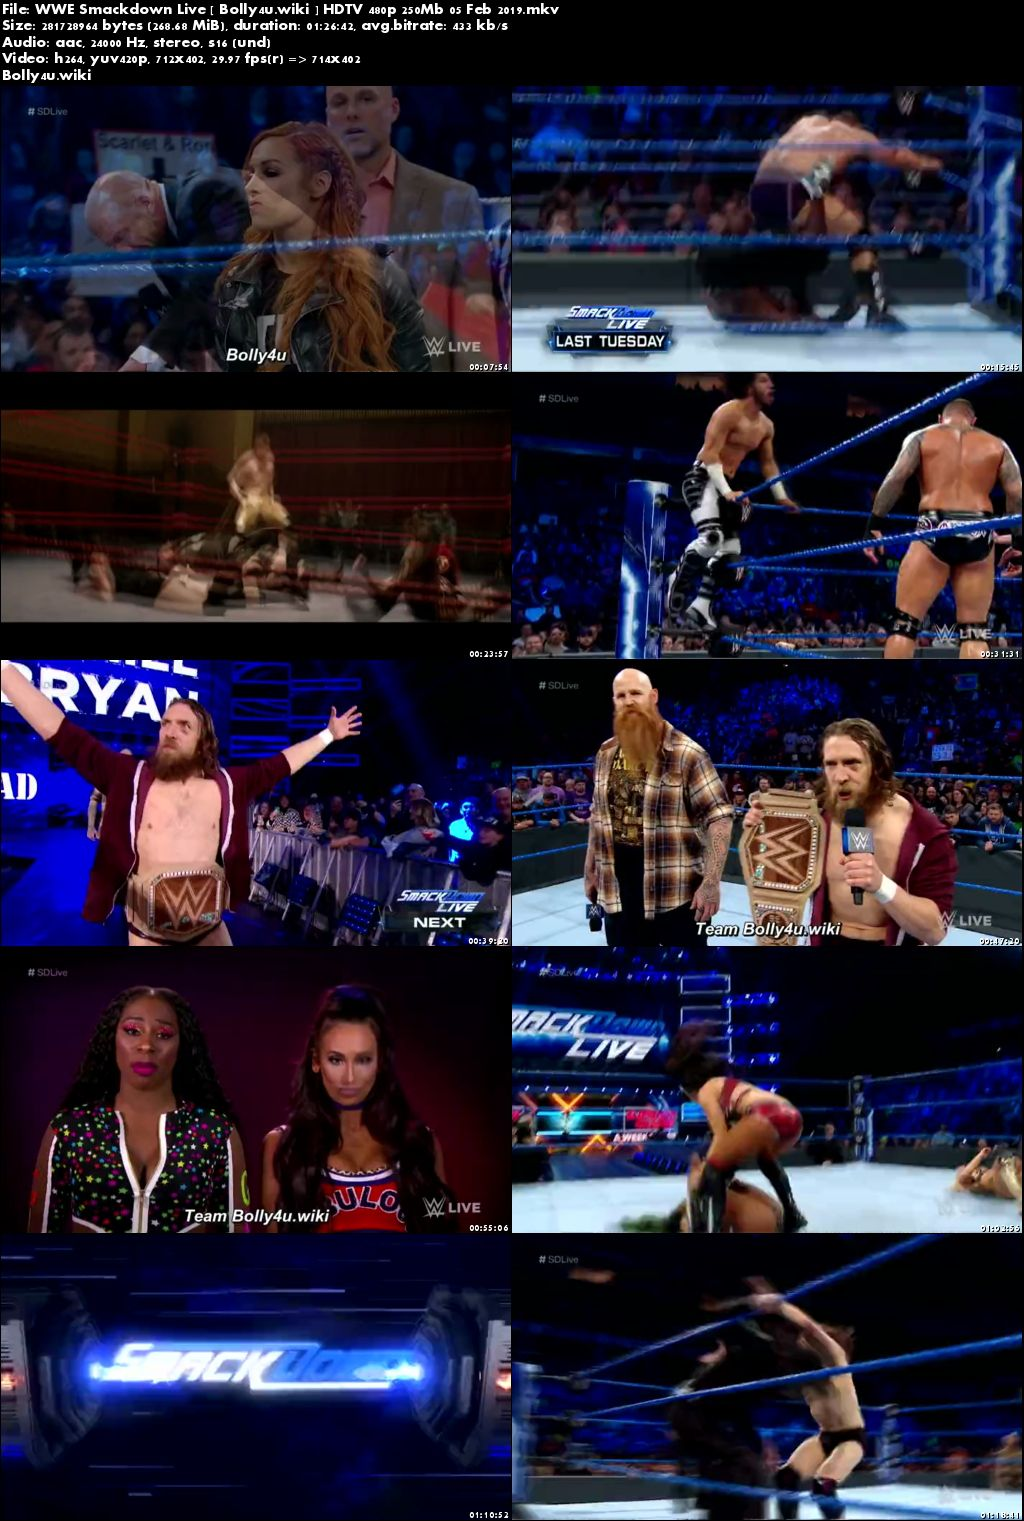 WWE Smackdown Live HDTV 480p 250Mb 05 Feb 2019 Download